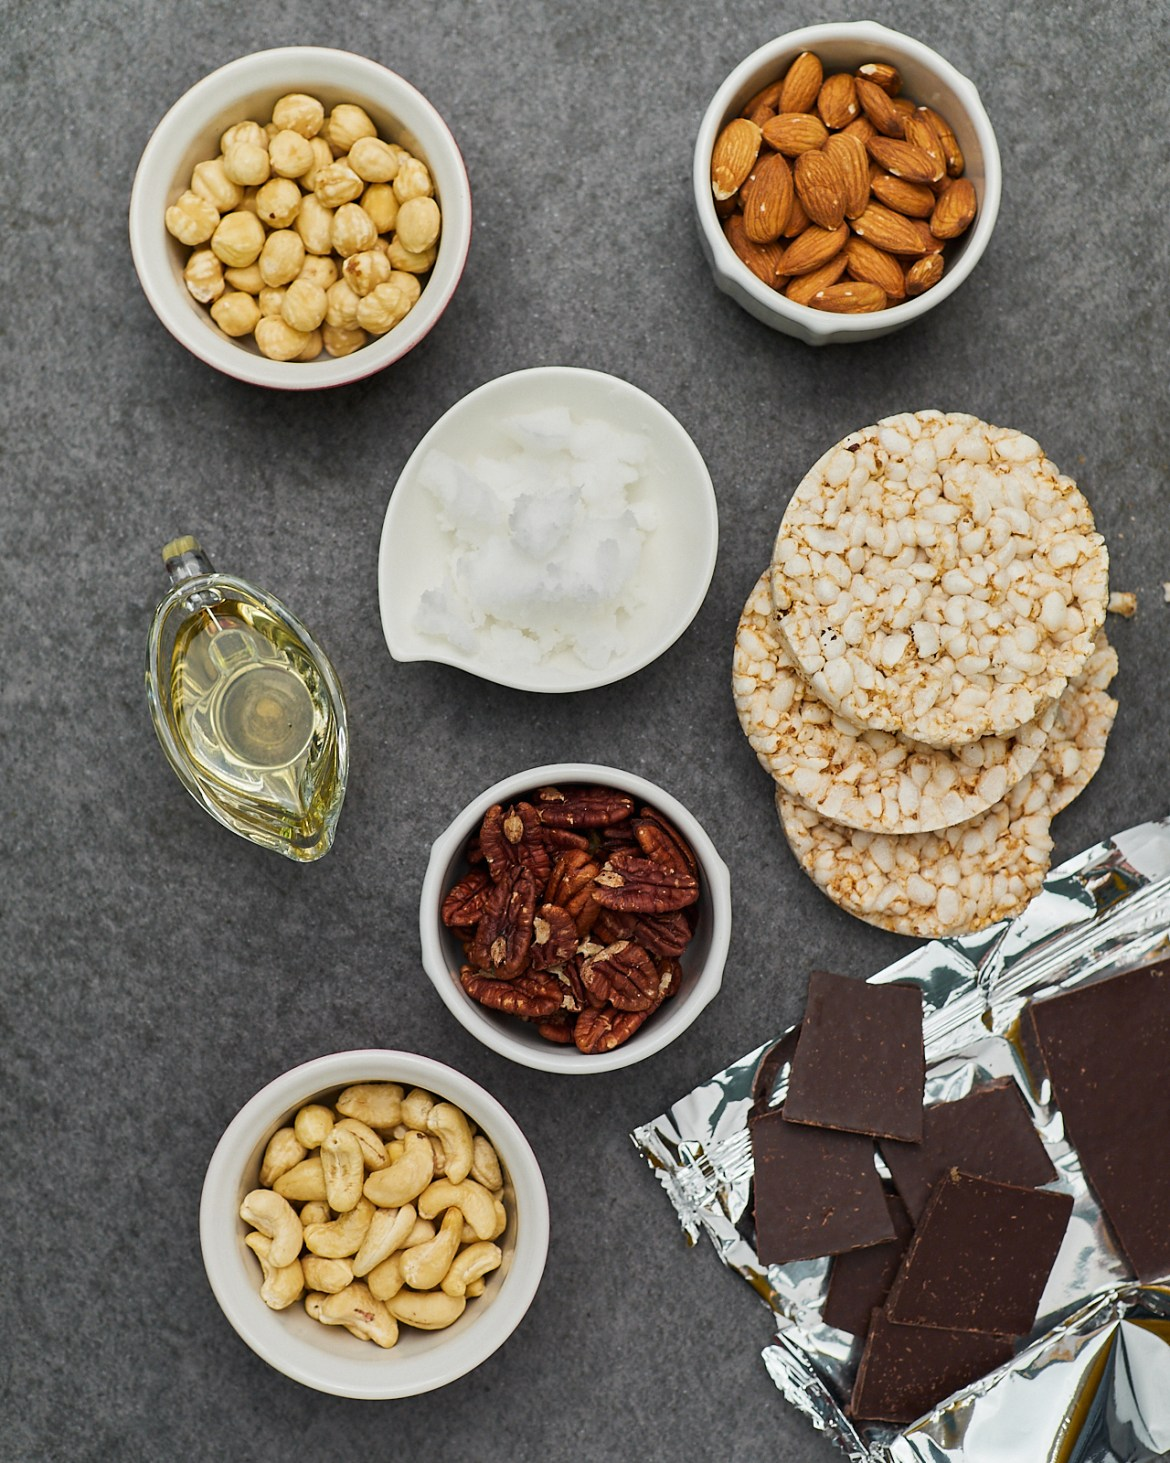 ingredients for cereal bars